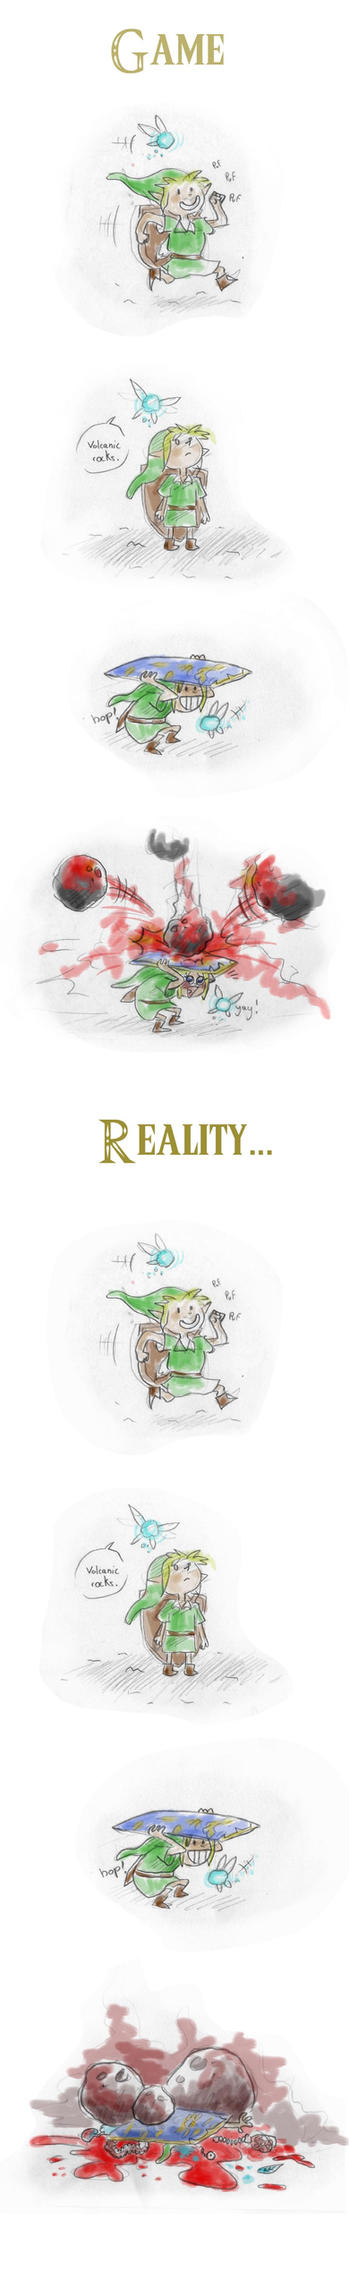 Link versus reality by Gouenne